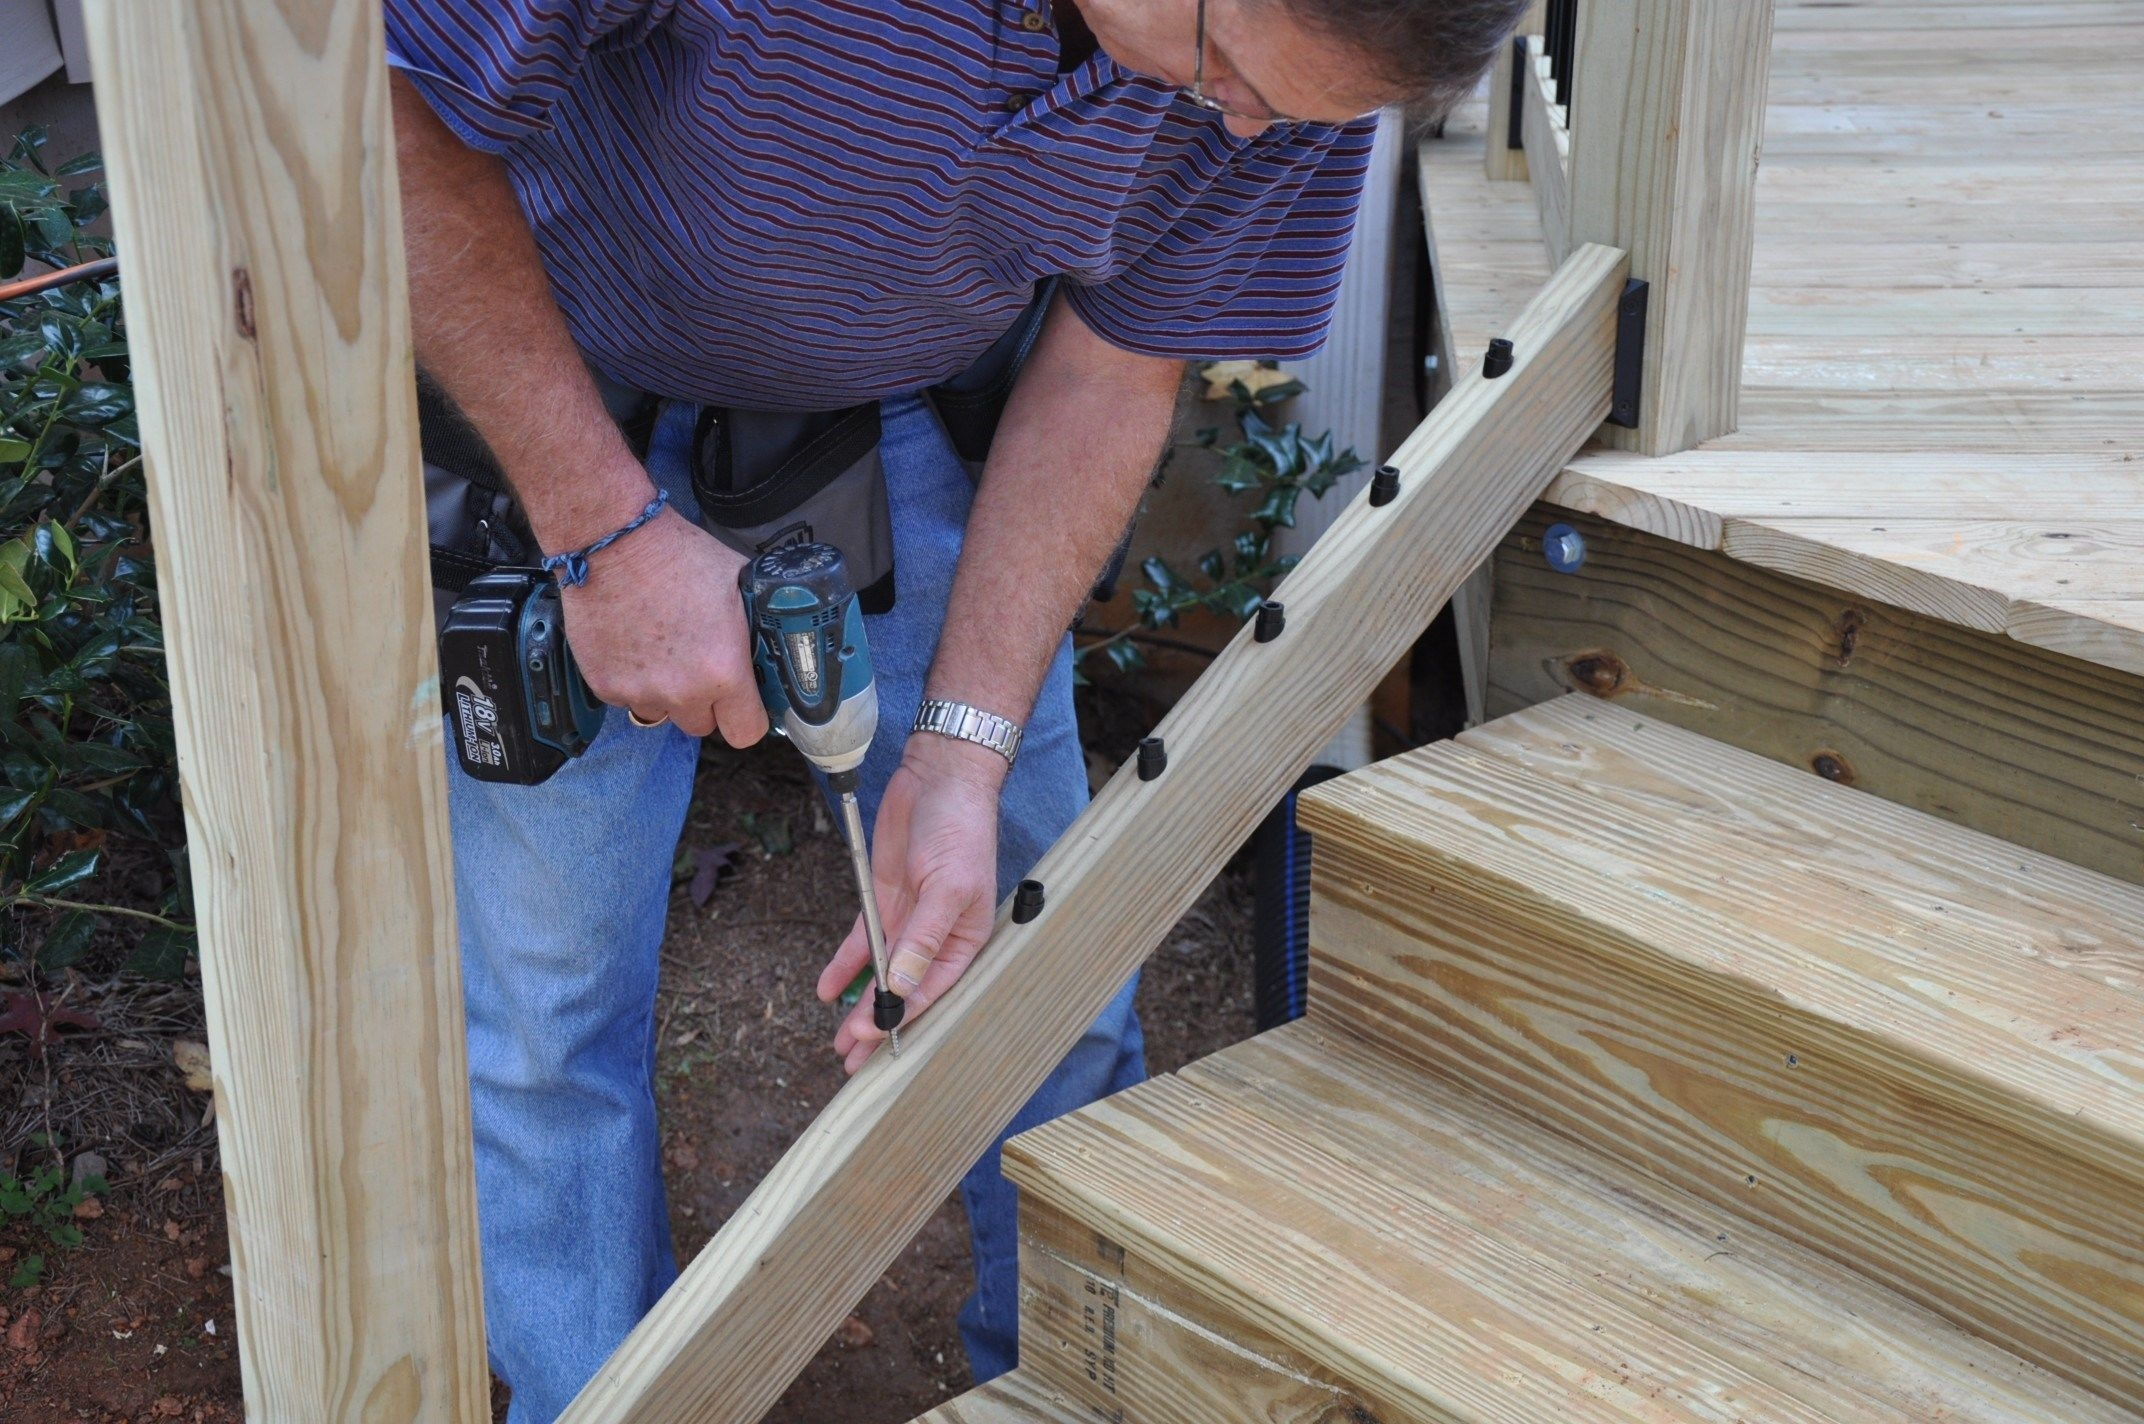 How To Install Deck Stair Railings Decks Com | Diy Deck Stair Railing | Easy | Outdoor | Aircraft Cable | House | Simple